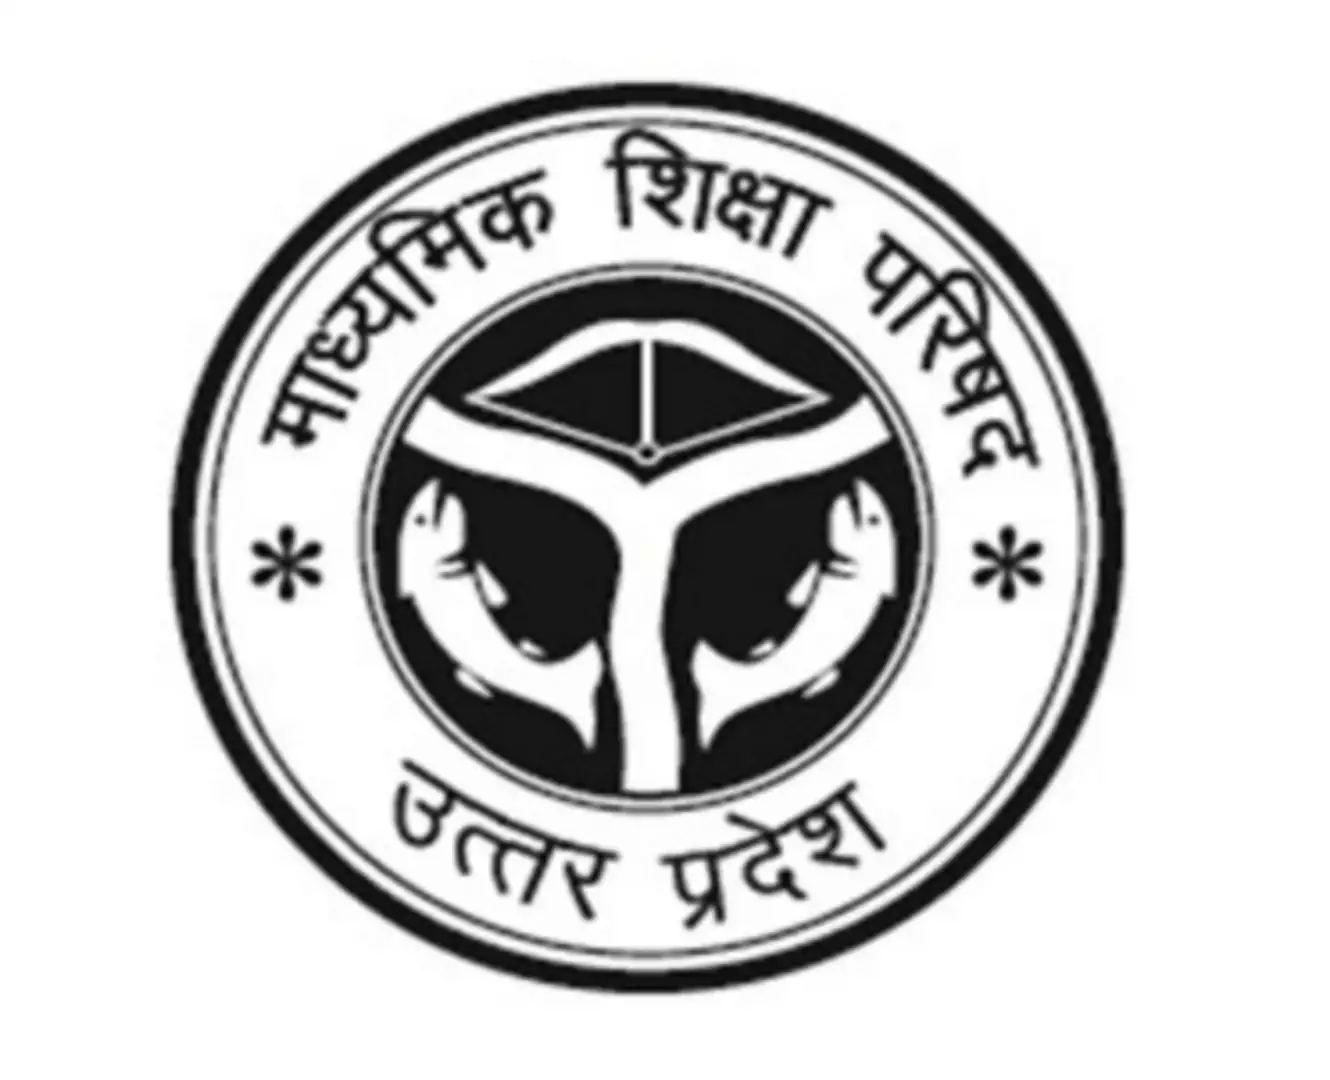 UP Board 12th Supplementary Hall Ticket